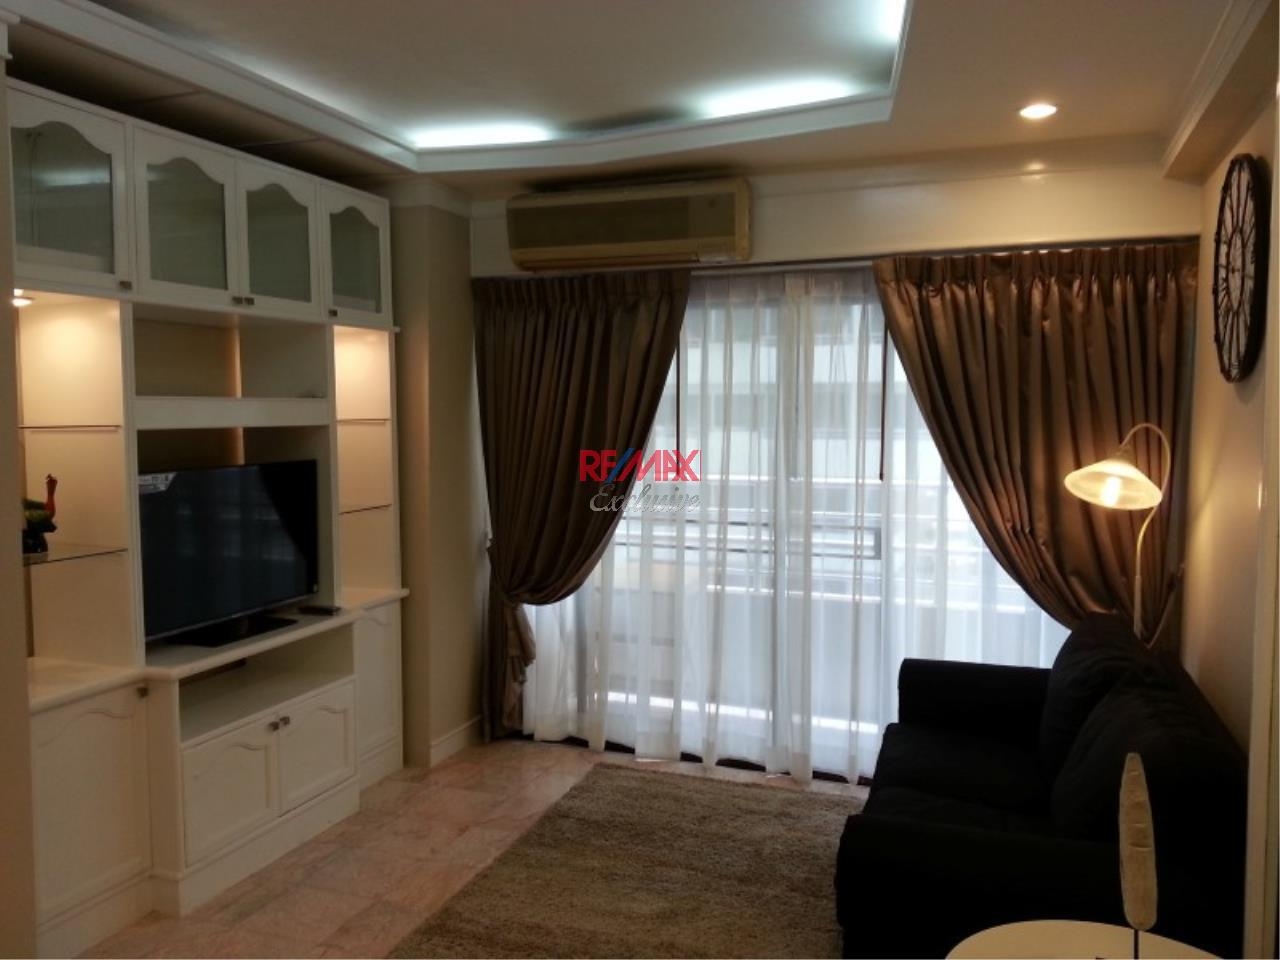 RE/MAX Exclusive Agency's Big 1 Bedroom for sale at Sarajai Mansion 4800000 14